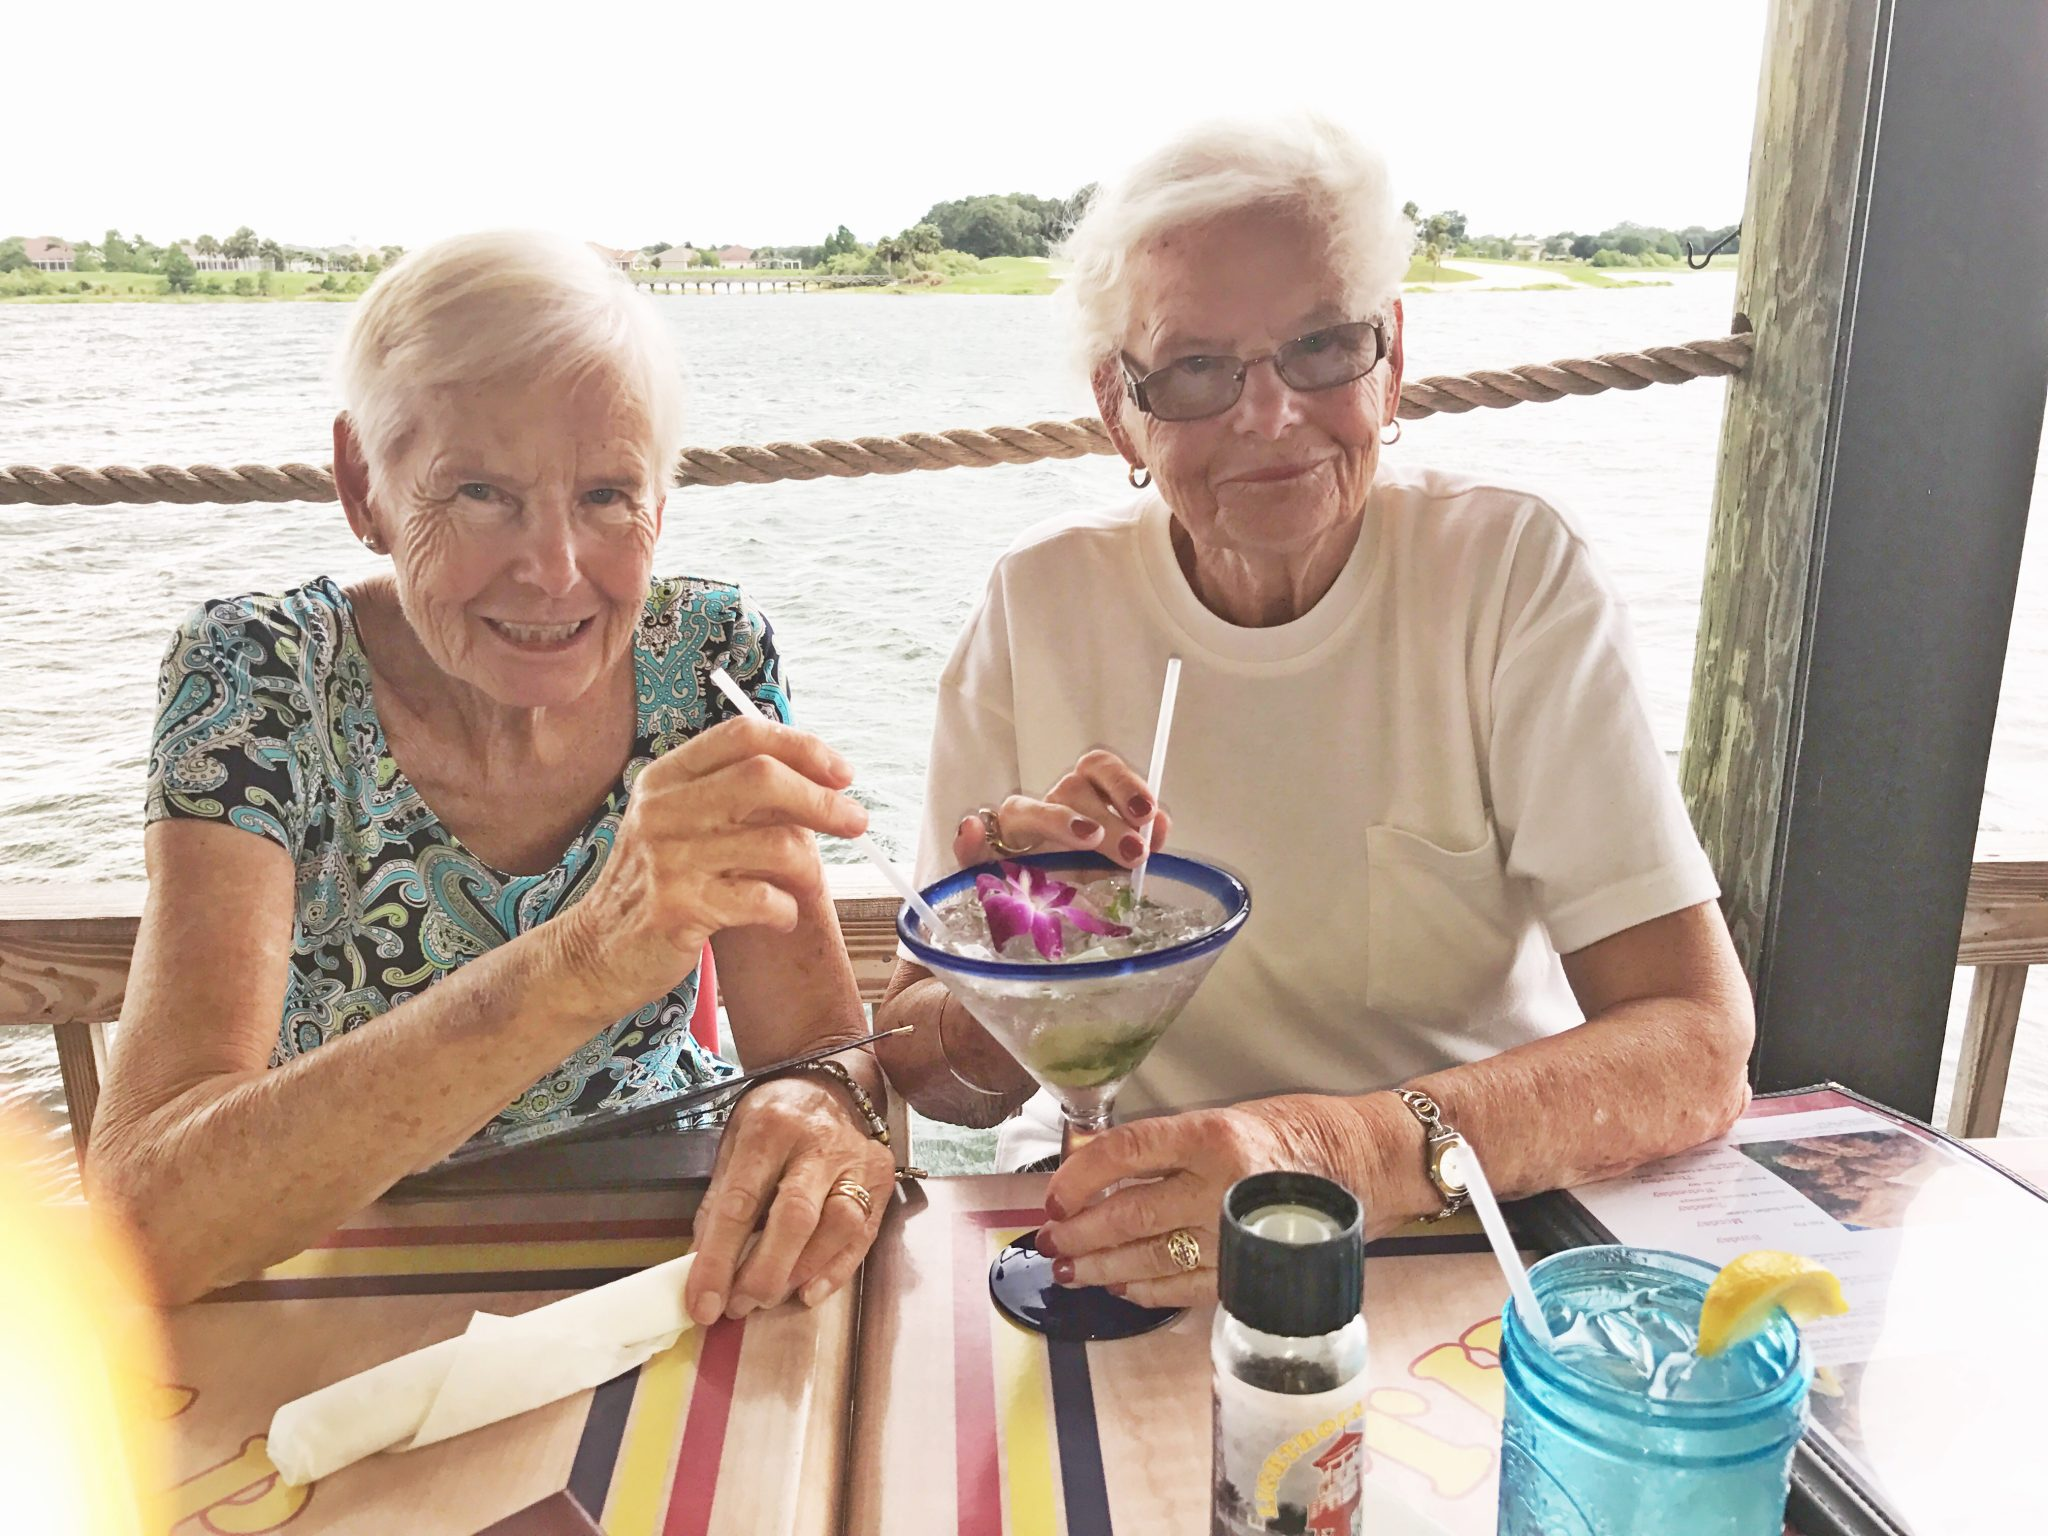 Oma, some of my happiest memories of my life involve you. One of my favorites is when we would play in your backyard in Colorado in the snow. You didn't want our shoes to get wet, so you put plastic bags around them! Always creative like that, you were the original recycler. We had a lot of great times at red rocks and Heritage Square, especially during Oktoberfest.  Thank you for sharing with me our German culture and heritage. My other favorite memories involve the beach. I am so glad we got to go to so many different fun beaches in Florida.  You were the kindest Oma, and have left a great mark in my heart forever.